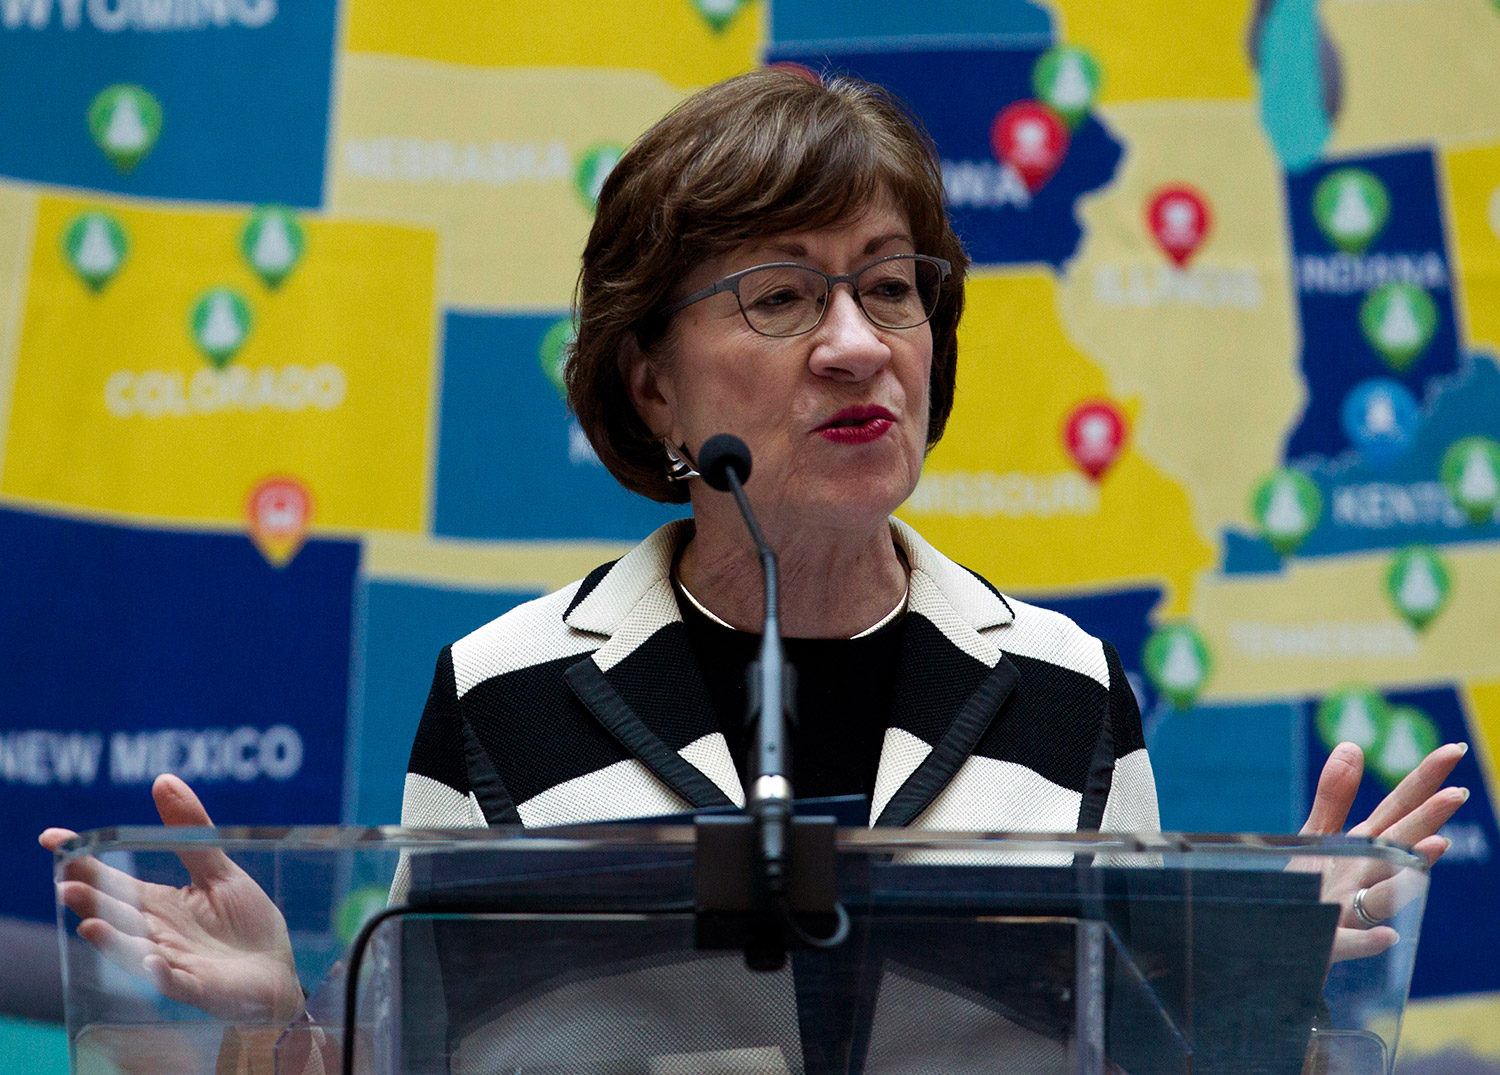 Sen. Susan Collins, R-Maine, shown last month in Washington at an announcement related to infrastructure investment, says she would support bills to fund the government that do not include money for a border wall, and consider border security separately.